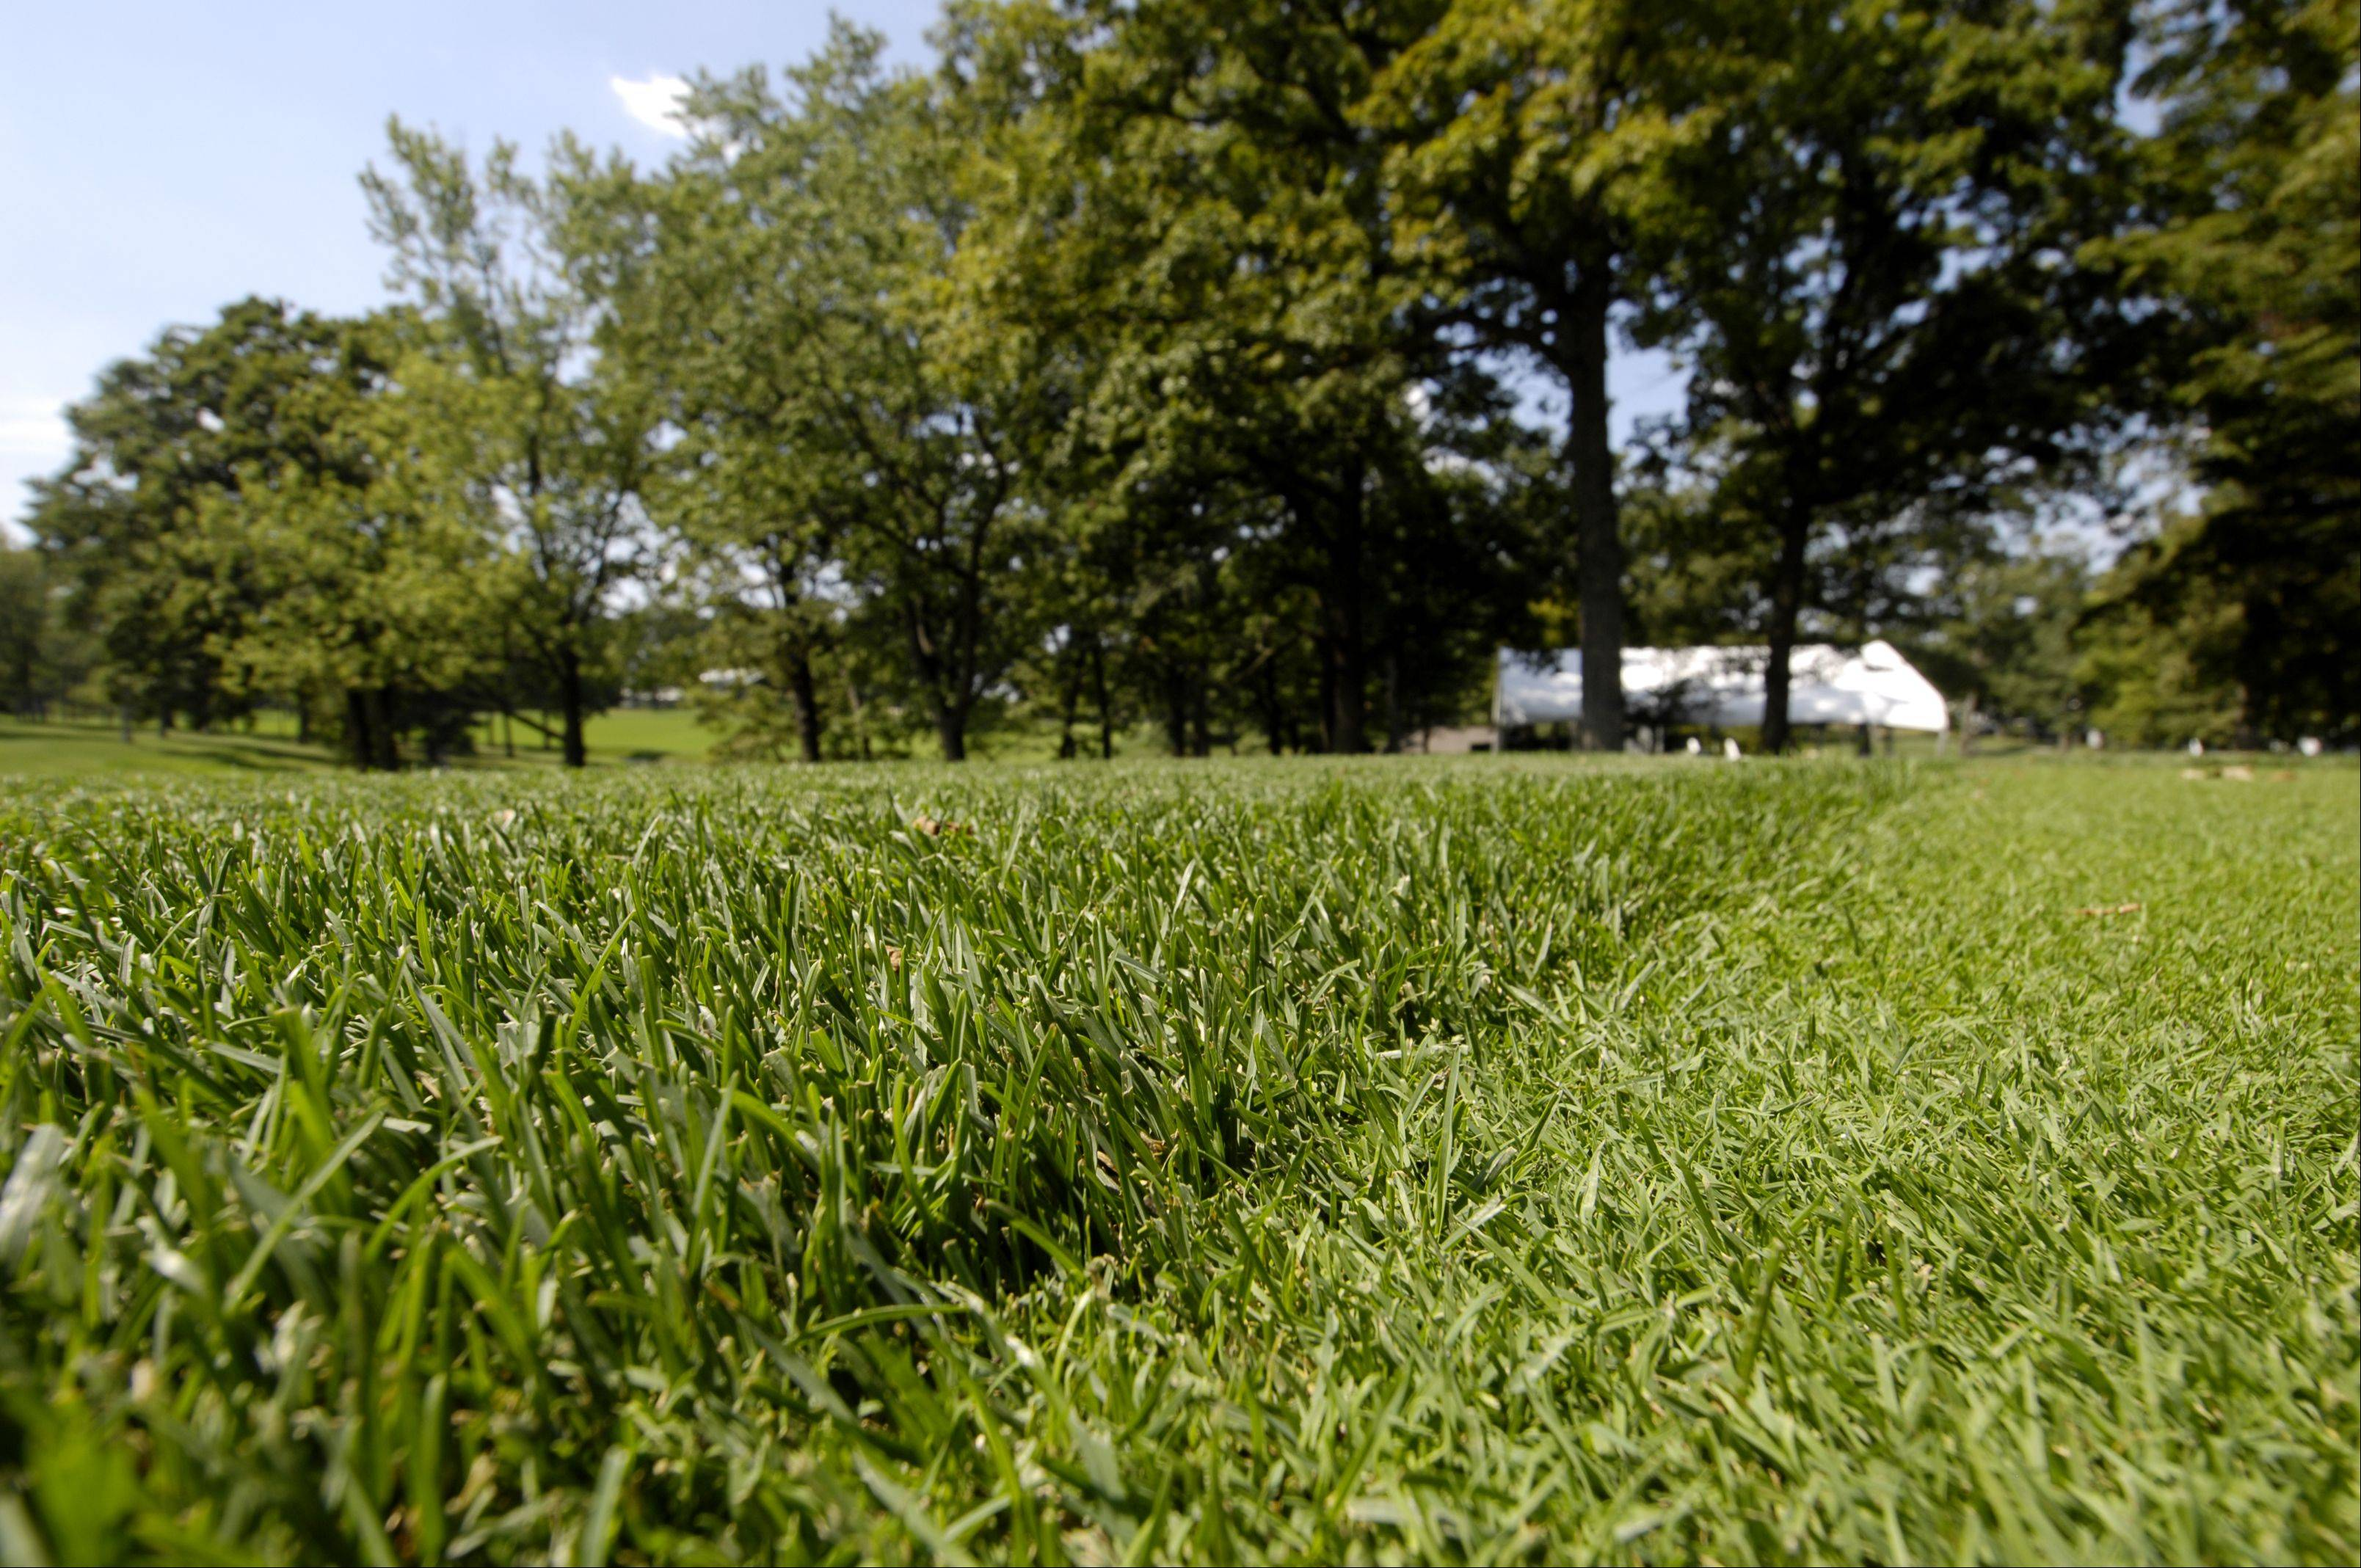 The Medinah Country Club No. 3 course will have an exceptionally short first cut of rough for this week's Ryder Cup.